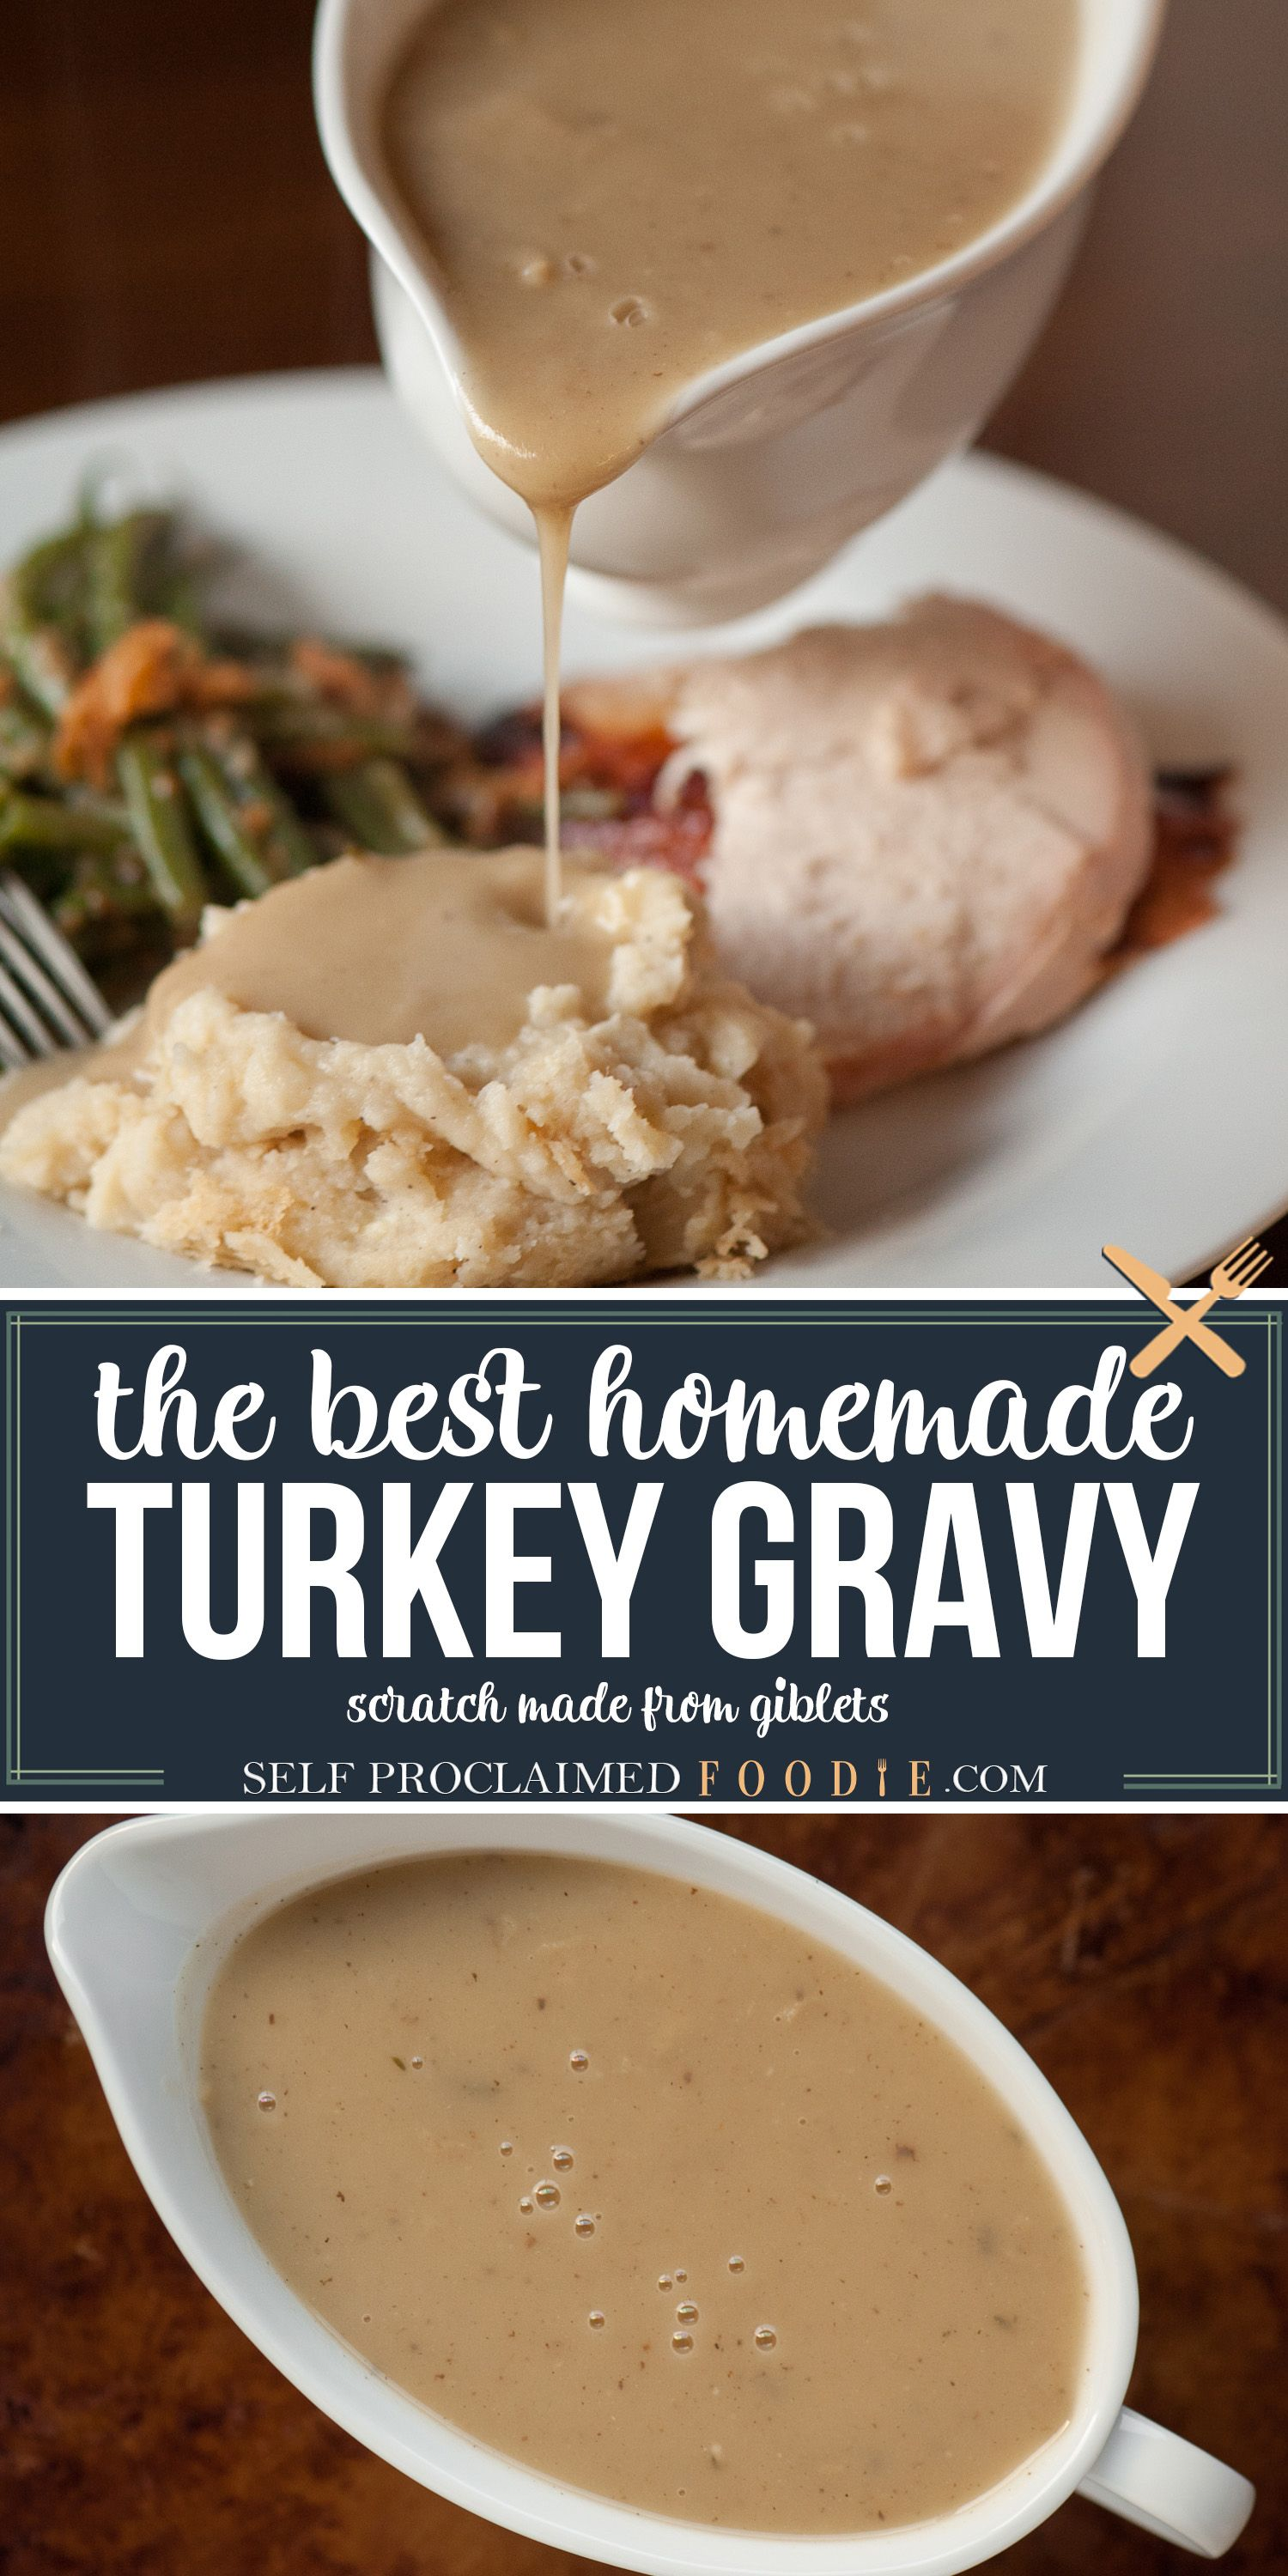 6949bf570a685adc8149e2dd58d70b06 - Better Homes And Gardens Giblet Gravy